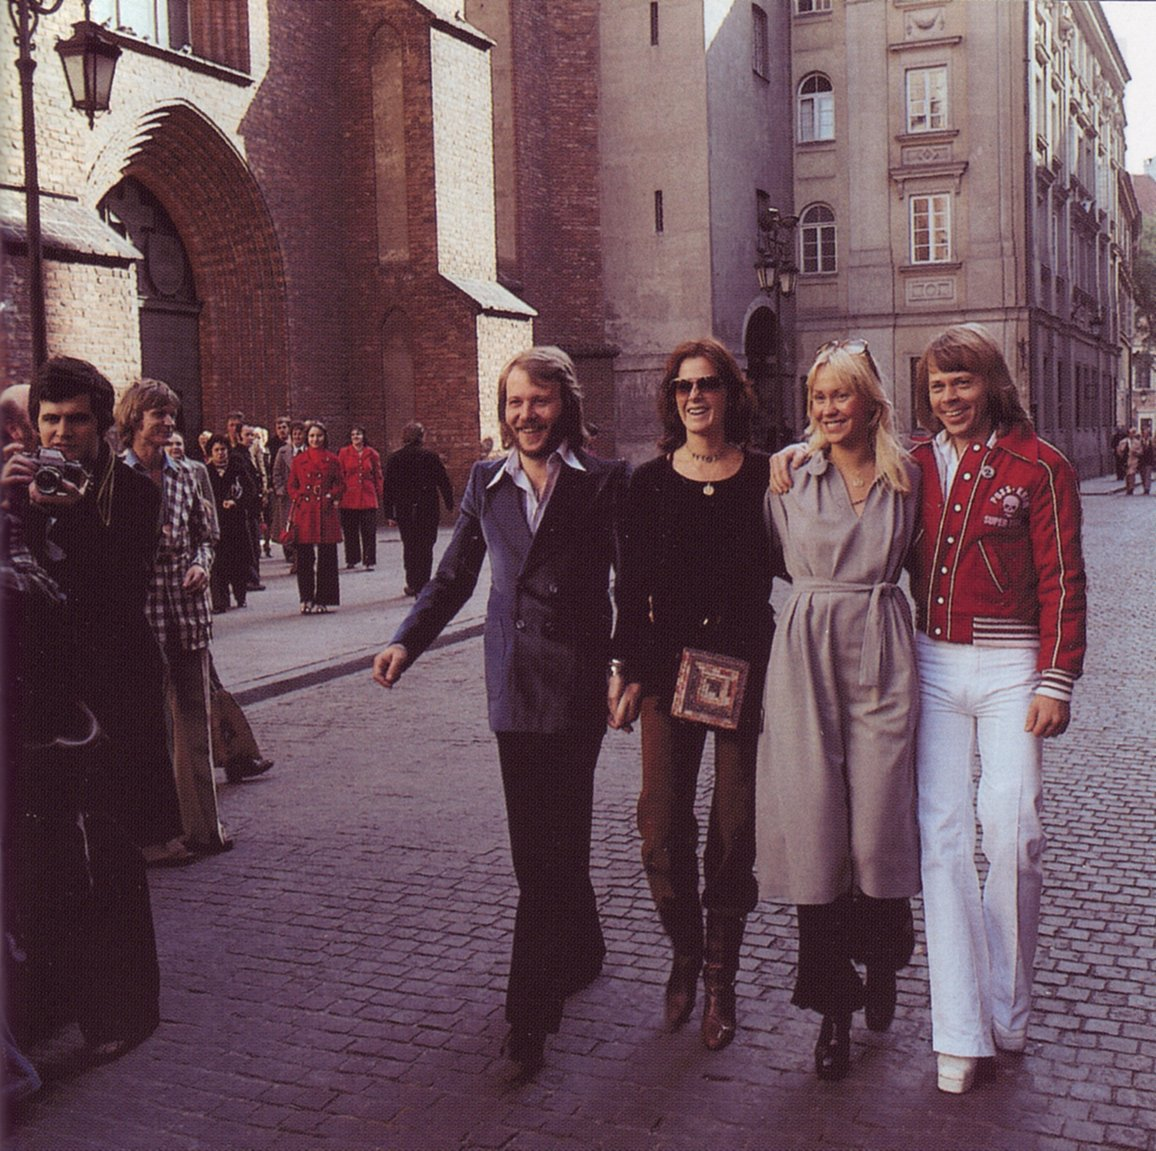 abba_in_poland_on_streets